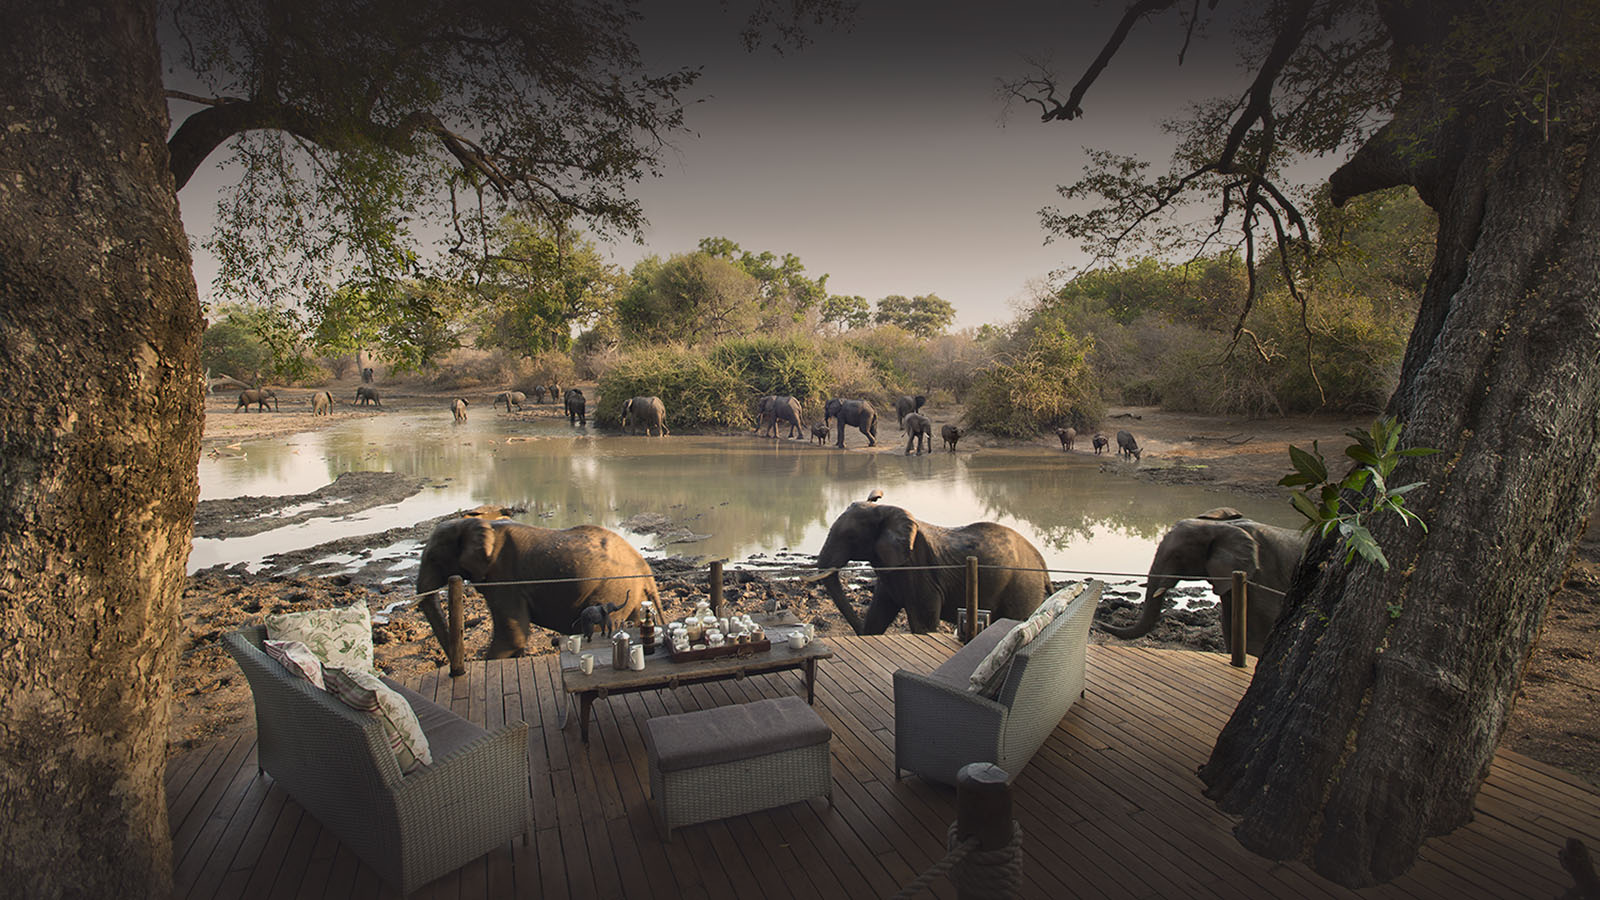 kanga bush camp mana-pools-national-park-lodges-zimbabwe-accommodation-african-bush-camps-elephants-main-deck